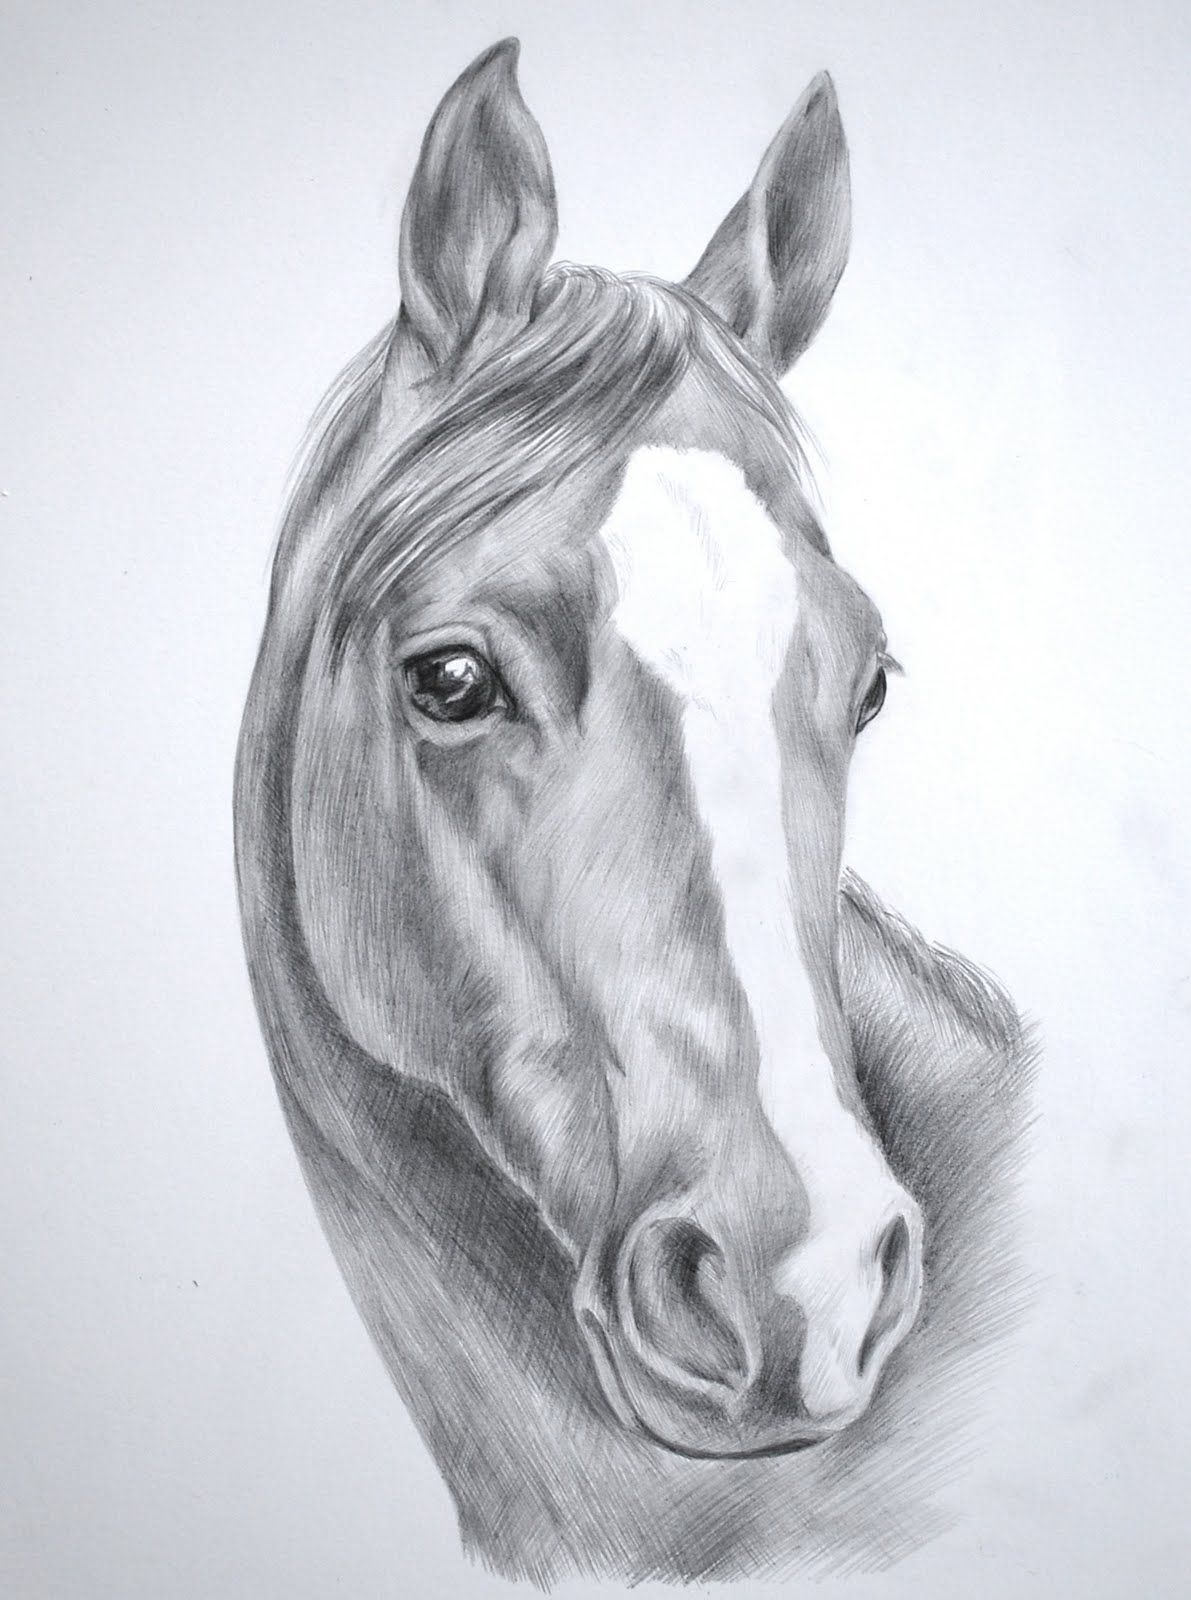 Horse Pencil Sketches  Wednesday, November 25, 2009 Horse Head  Drawingdrawing